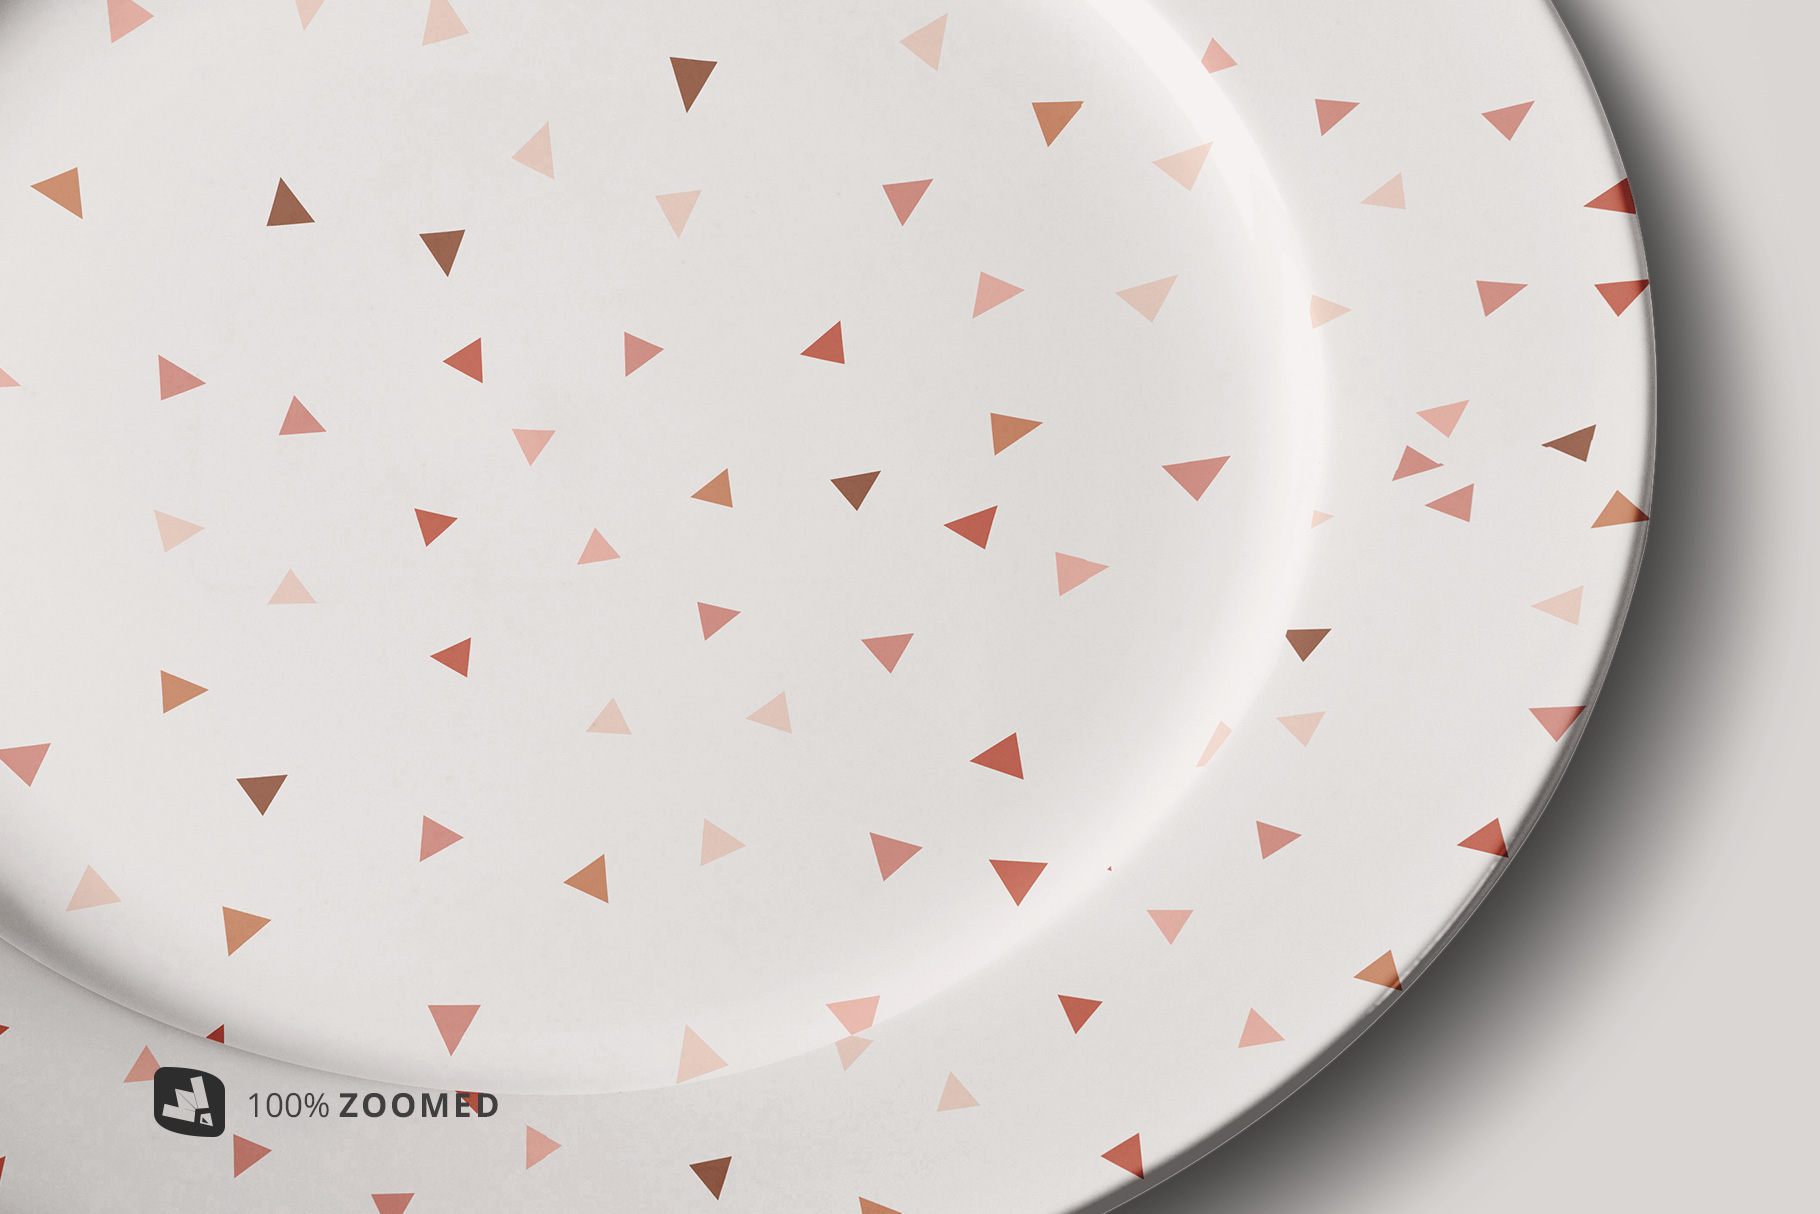 zoomed in image of the porcelain dinner plate mockup